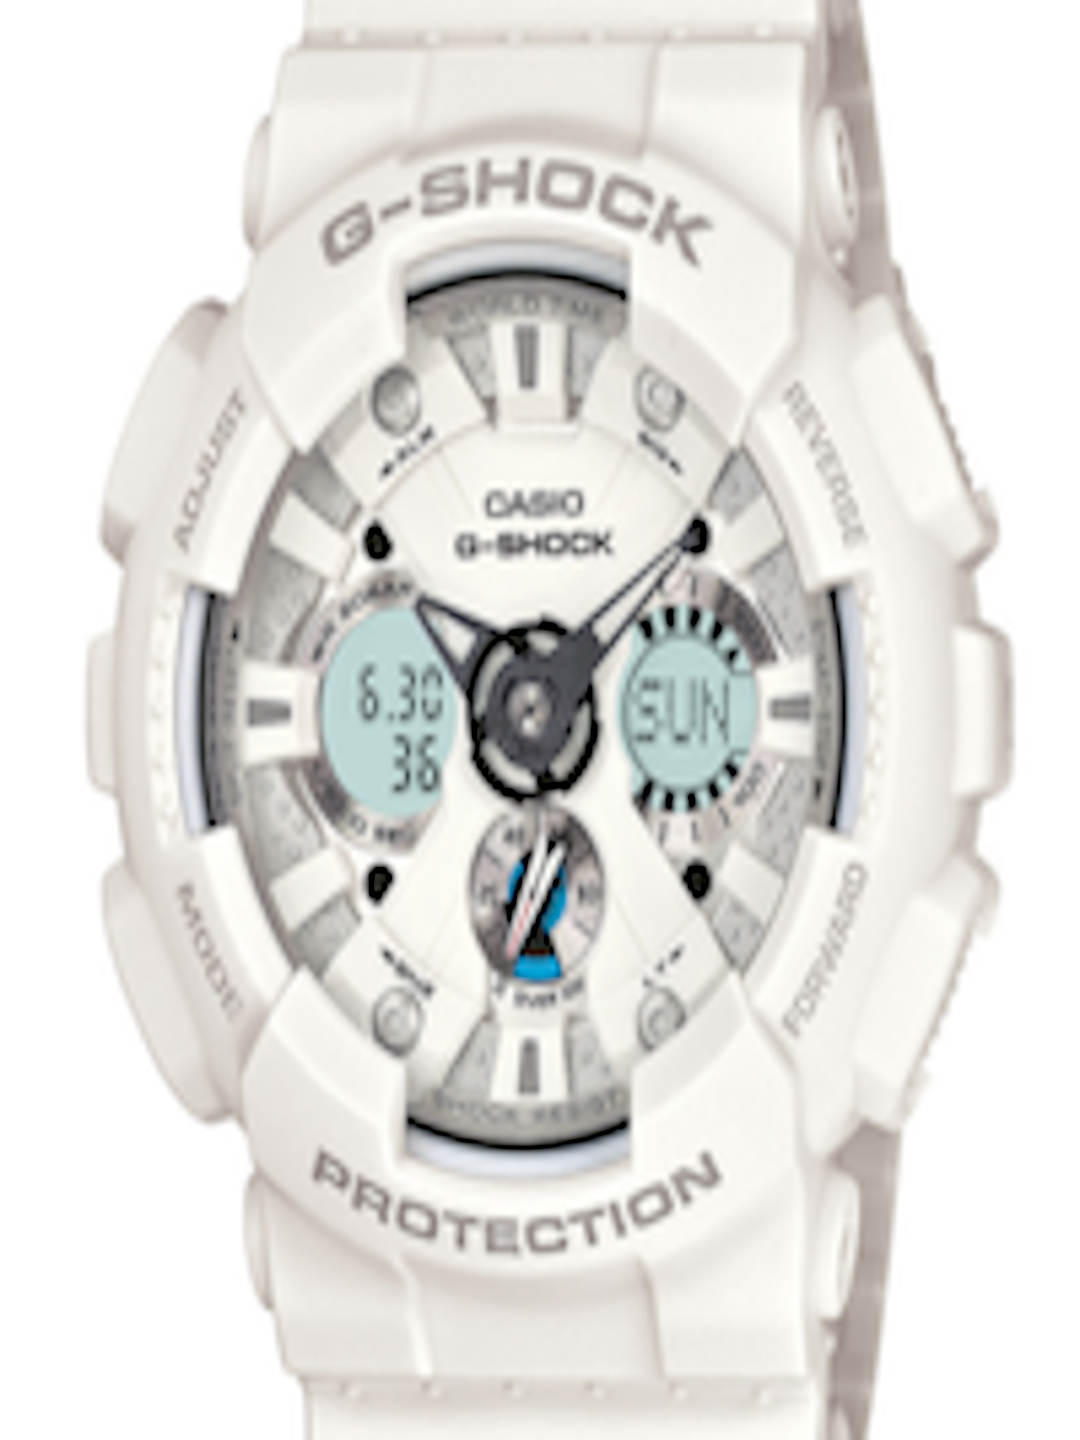 98941f236b12f Buy CASIO G Shock Men White Analogue   Digital Watch (G347) GA 120A 7ADR -  Watches for Men 95014